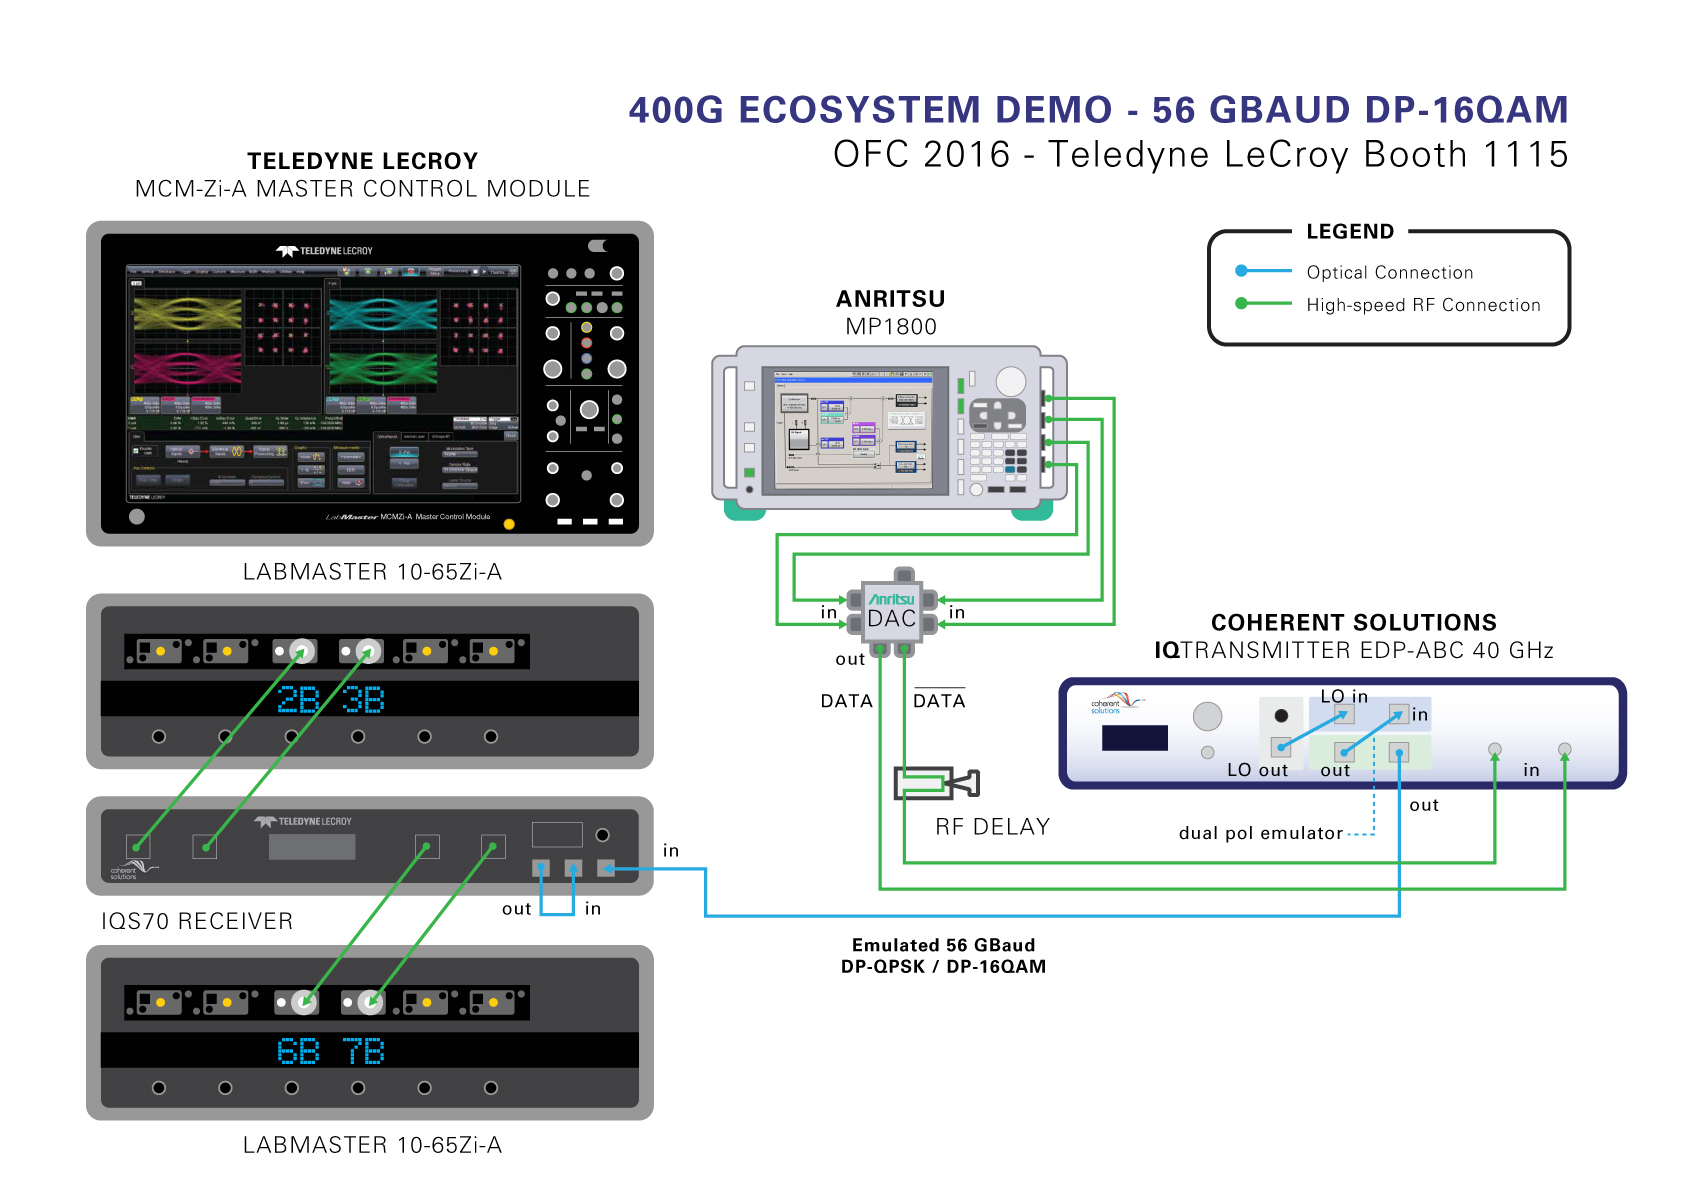 Teledyne LeCroy, Coherent Solutions, Anritsu and Oclaro showcase latest 400G test platform at OFC